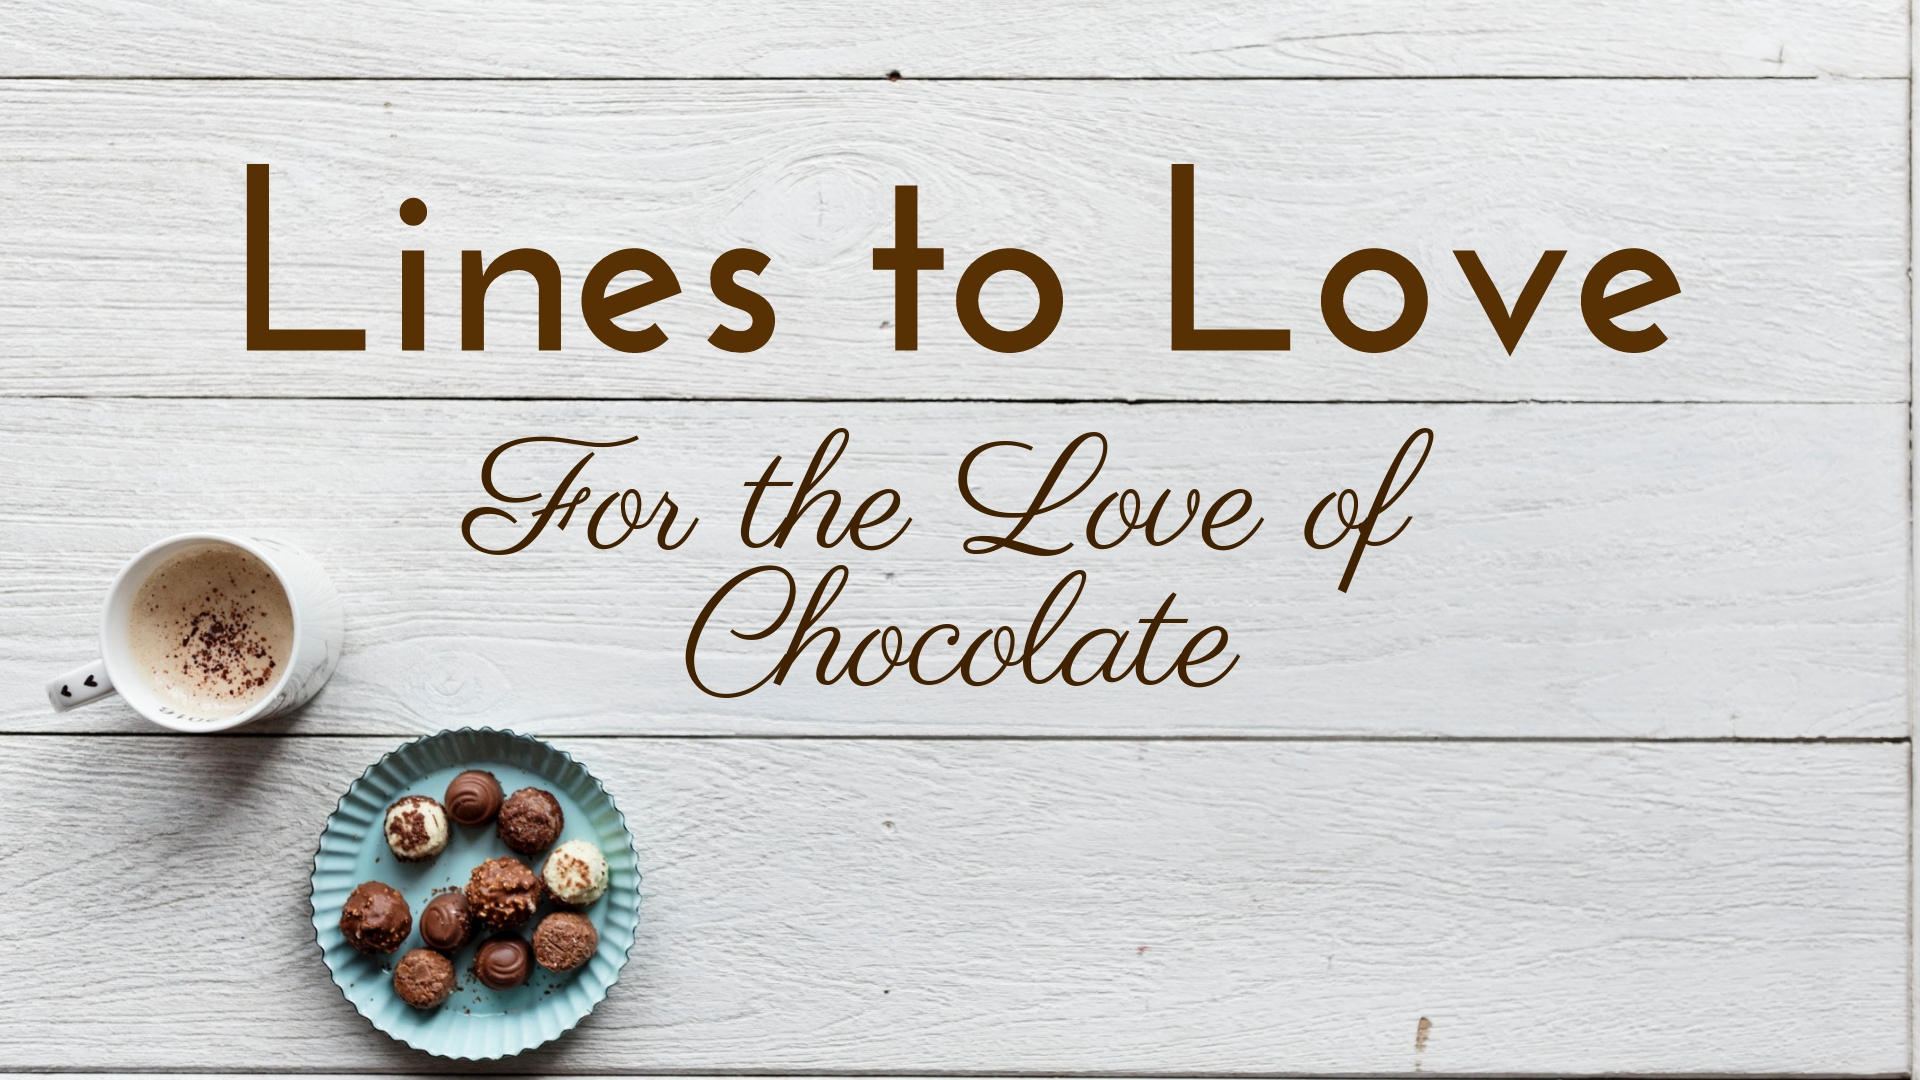 banner-lines-to-love-for-the-love-of-chocolate-01.jpg